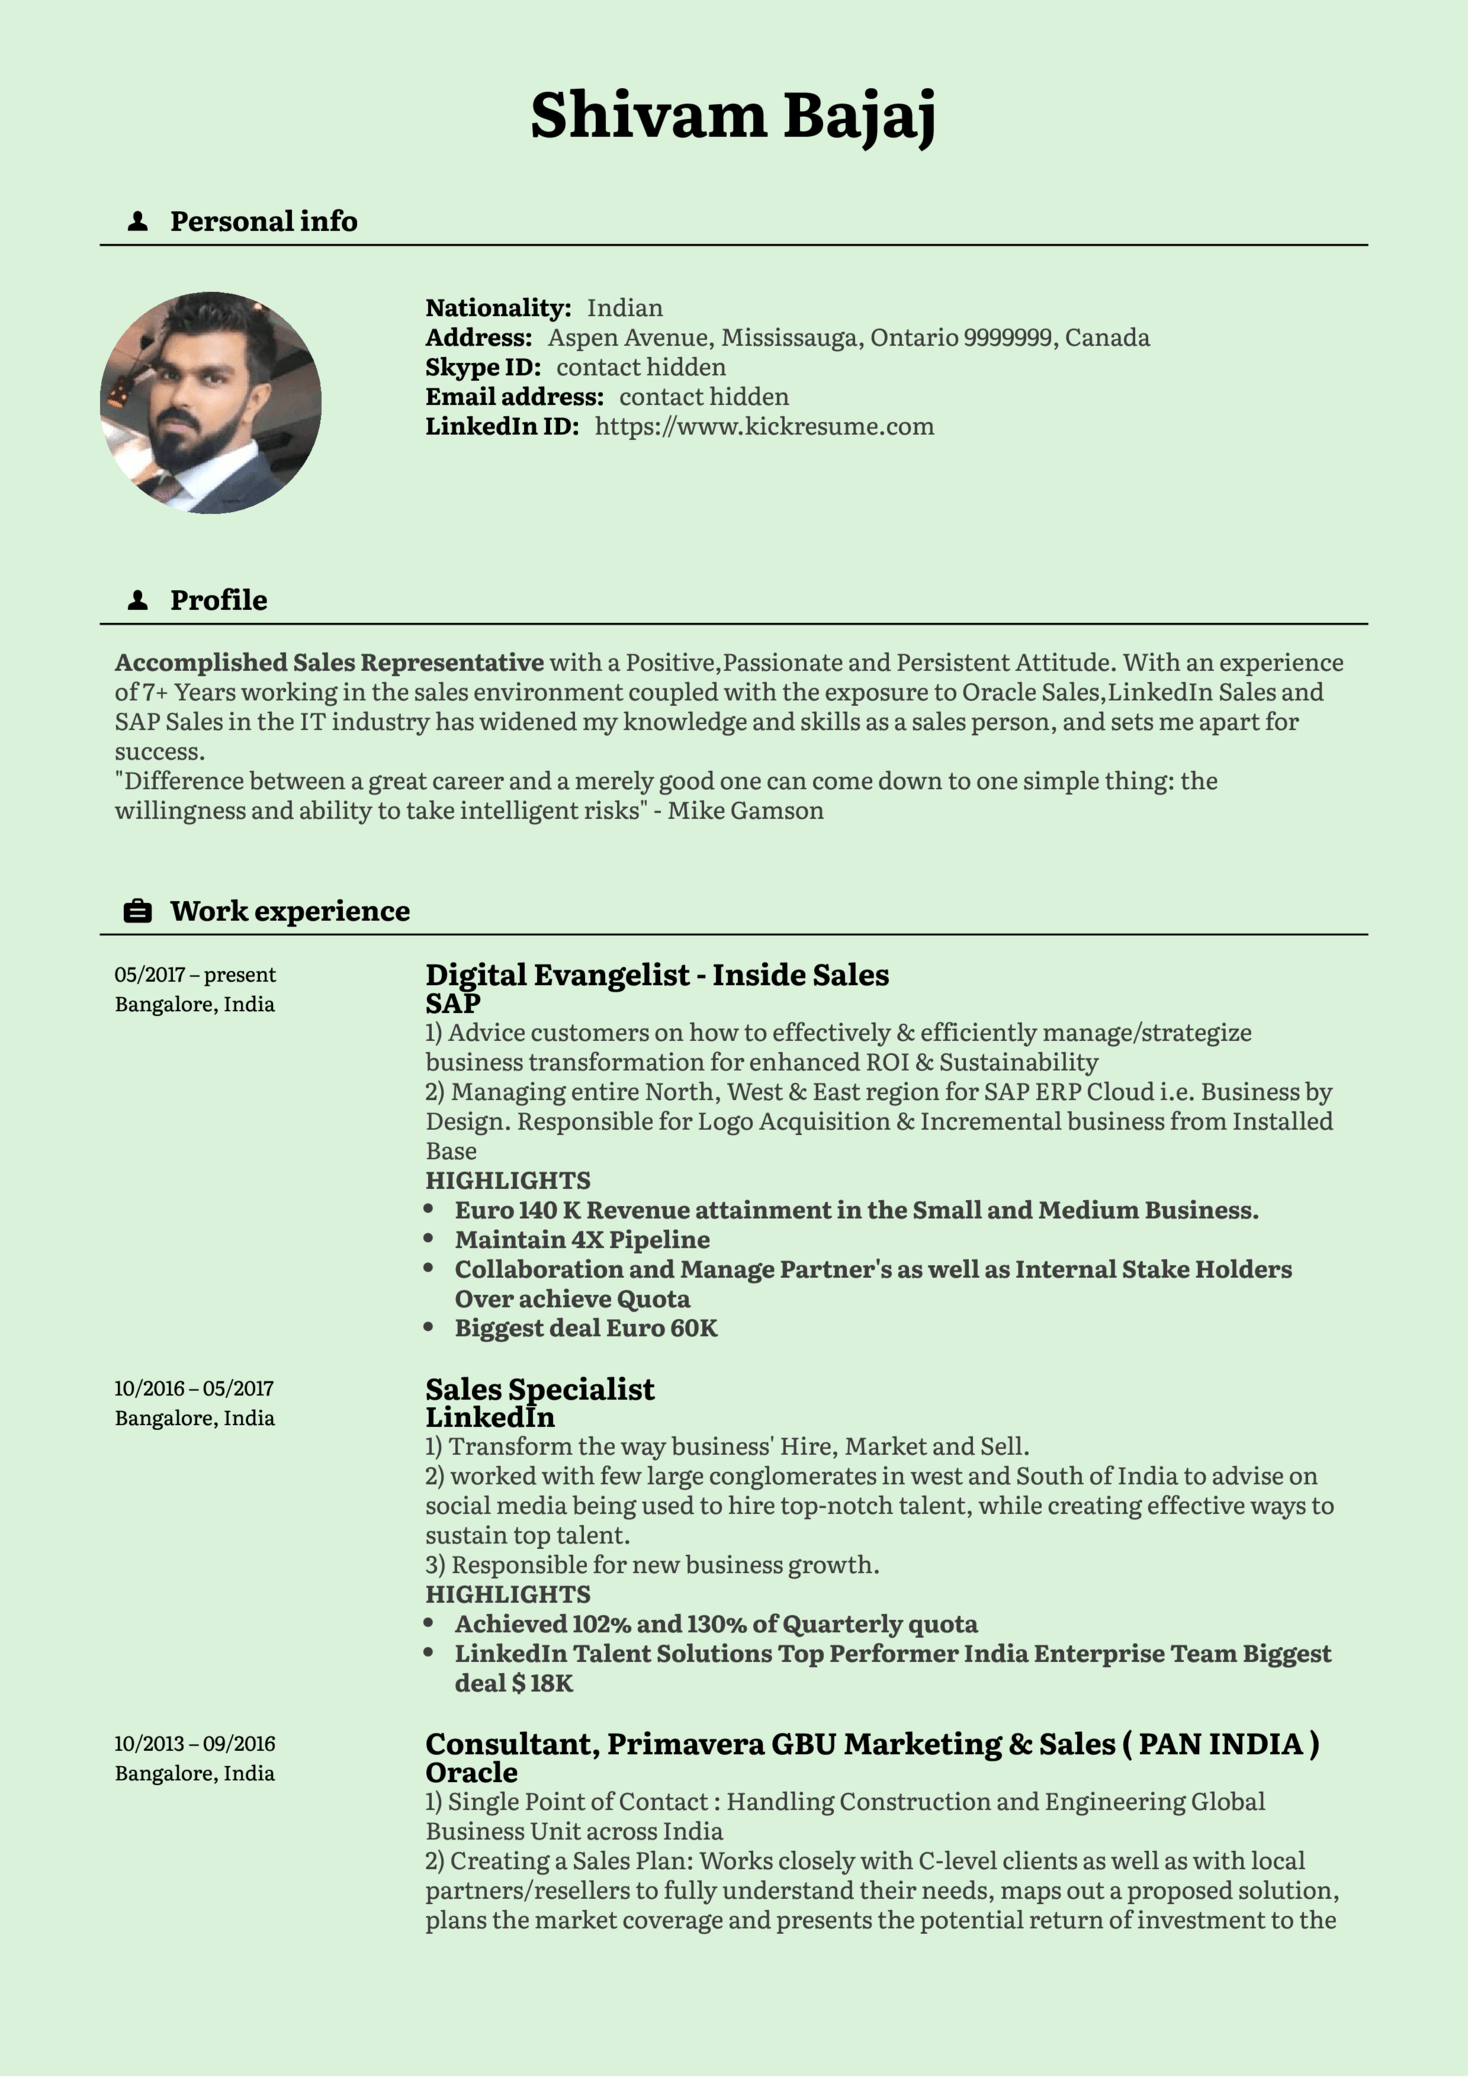 Resume Examples by Real People: SAP inside sales manager resume ...